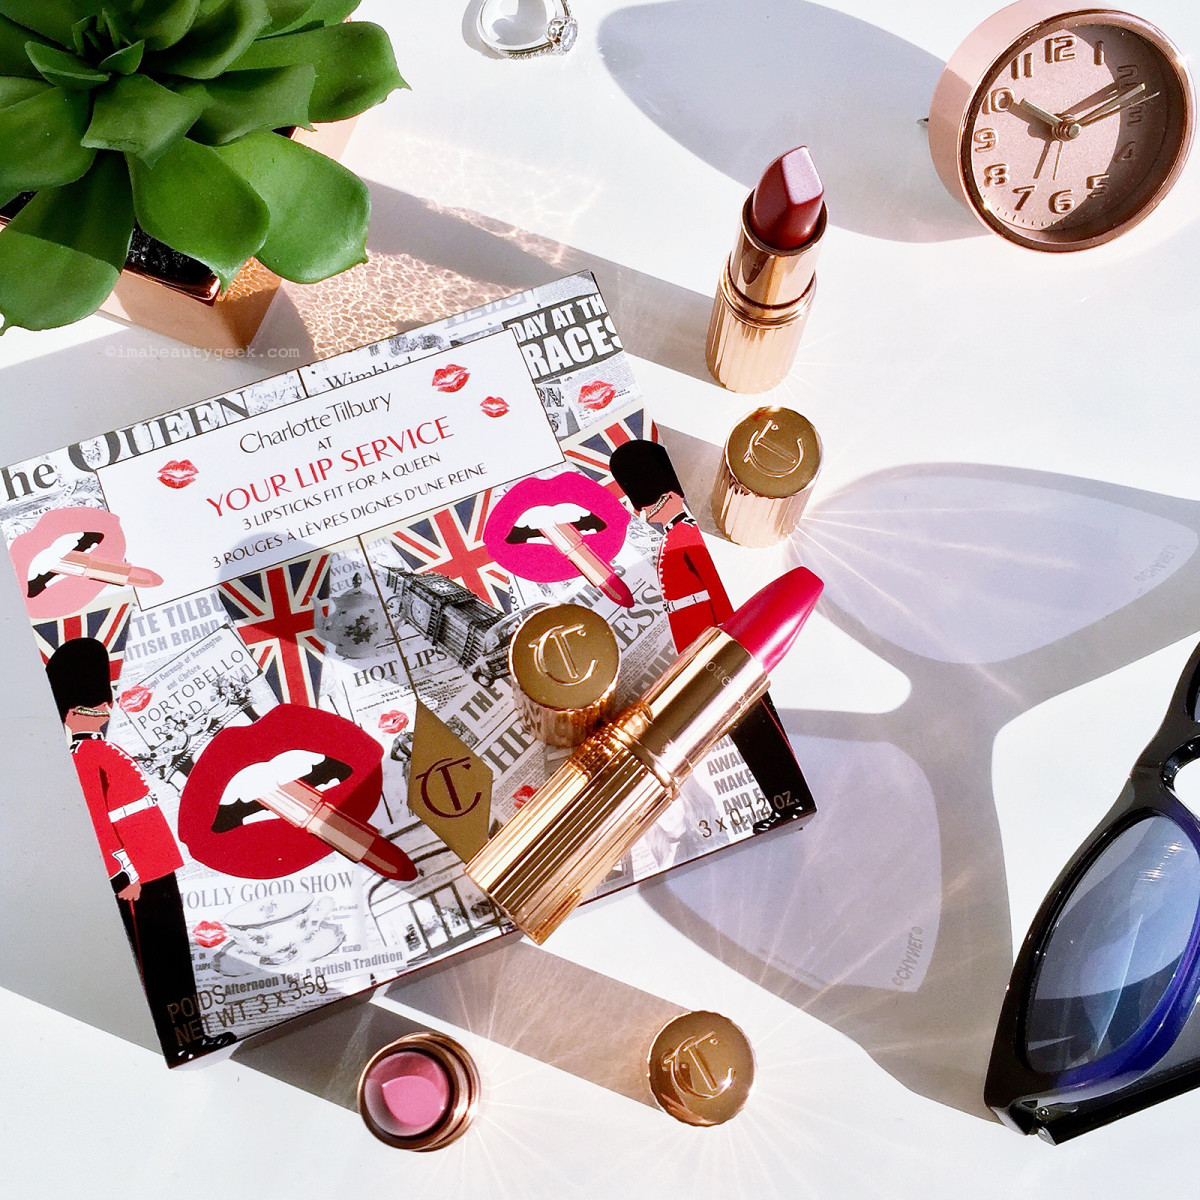 Charlotte Tilbury At Your Lip Service: 3 Lipsticks Fit for a Queen